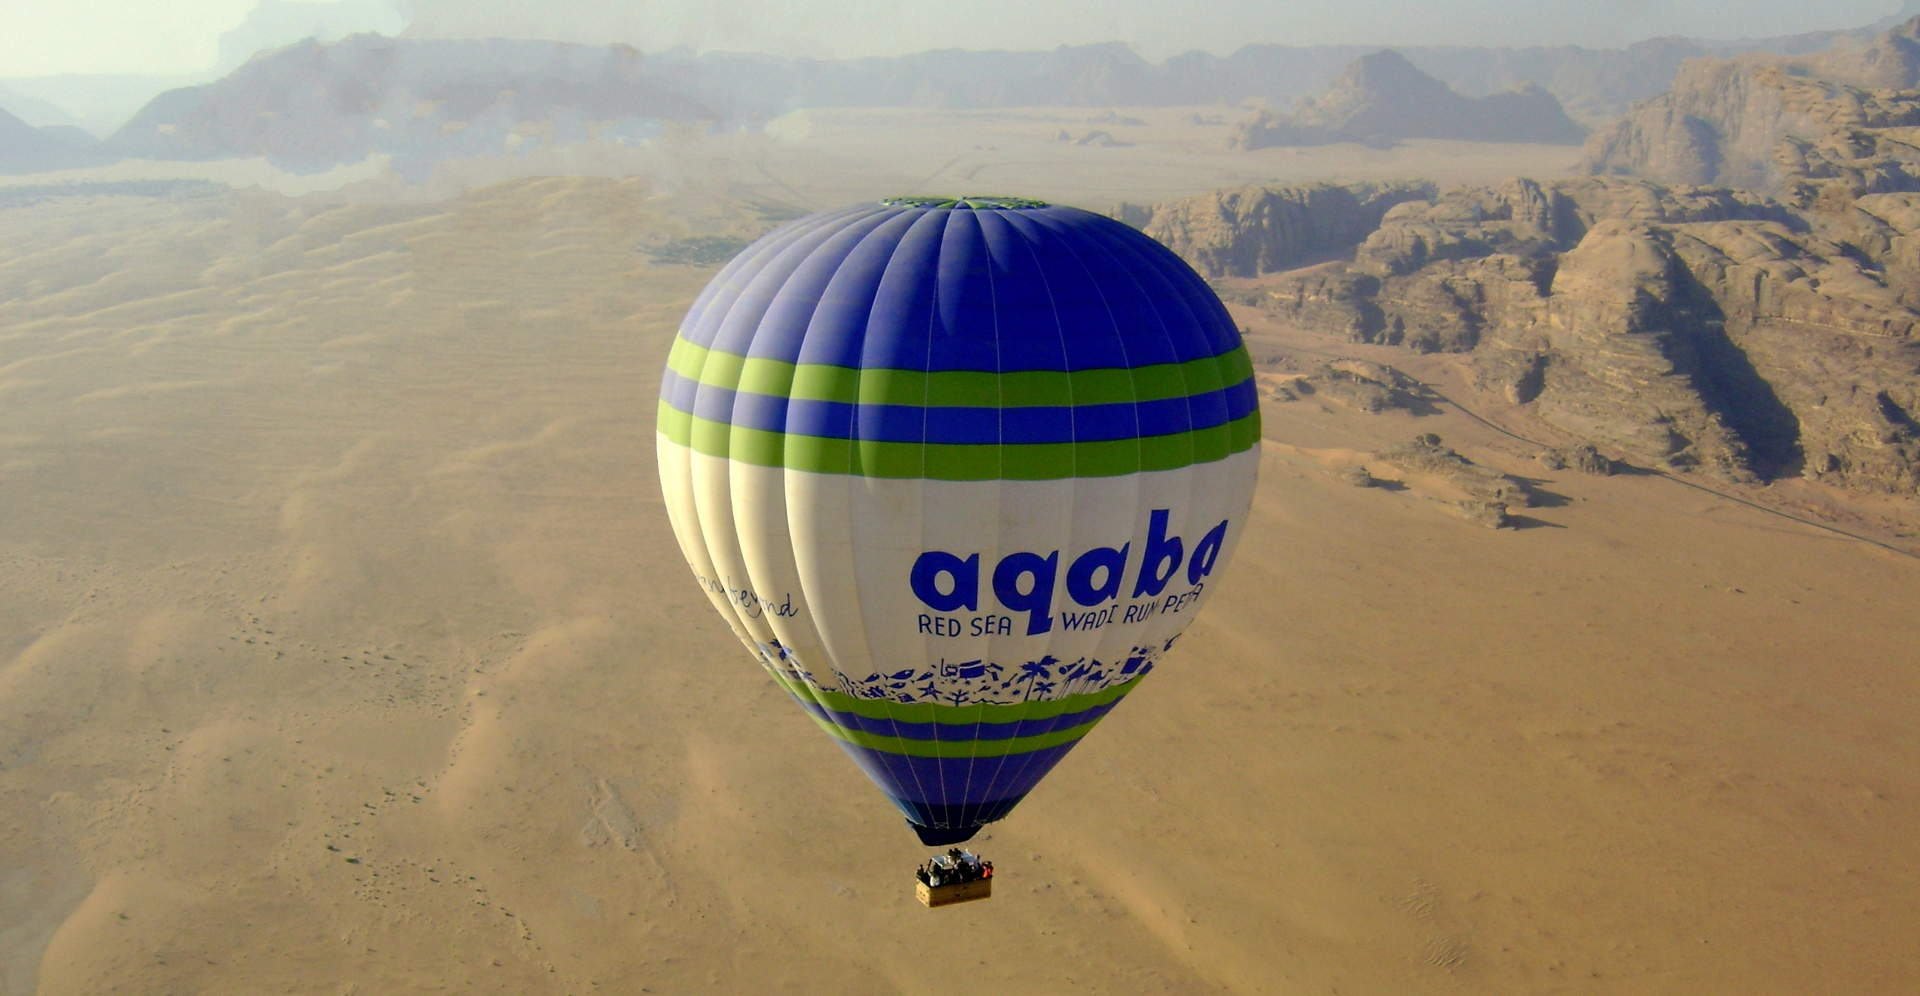 Wadi Rum Balloon Ride